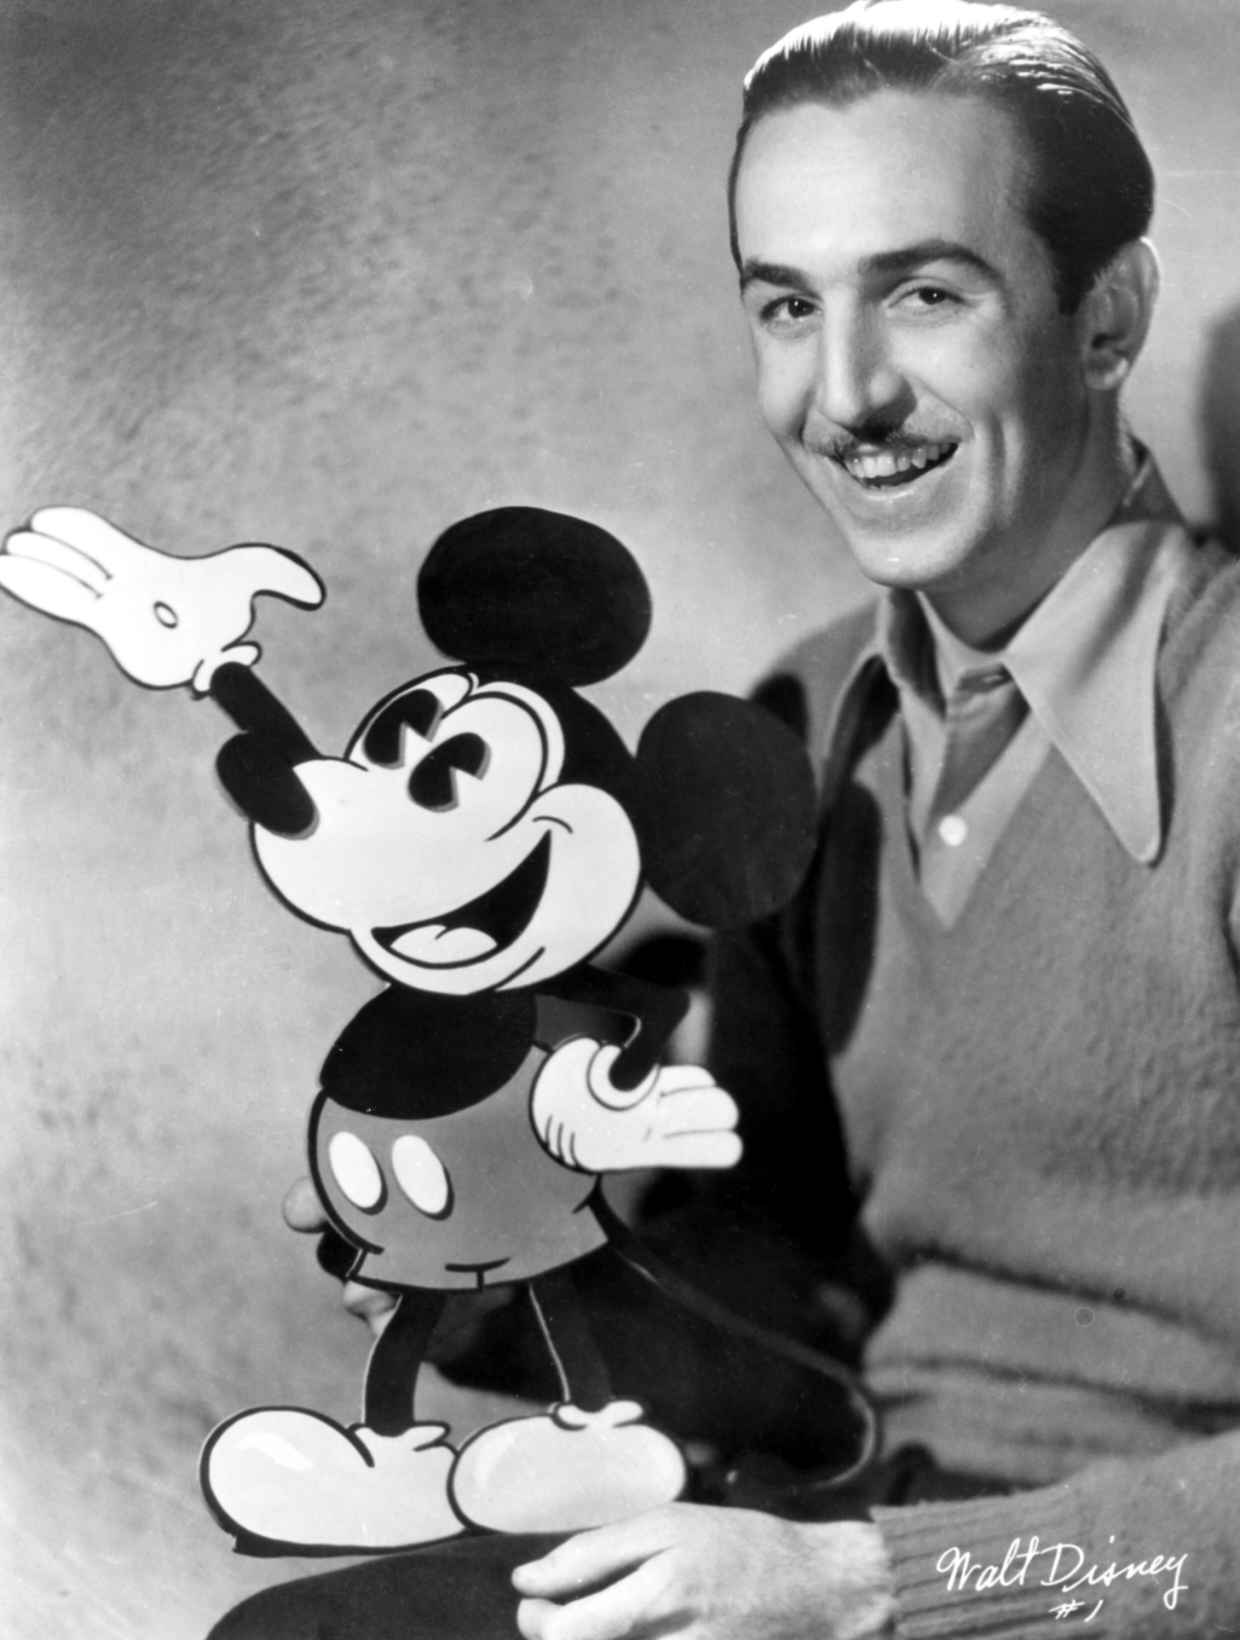 the life and achievements of walt disney The$walt$disney$family$museumwelcomes$ $ $ $$$$$visitors$in$the$presidio$ofsan$francisco$ $$$ visionary)artist,)storyteller&)entrepreneur) enriched)world)ofimagination)forgenerations)).